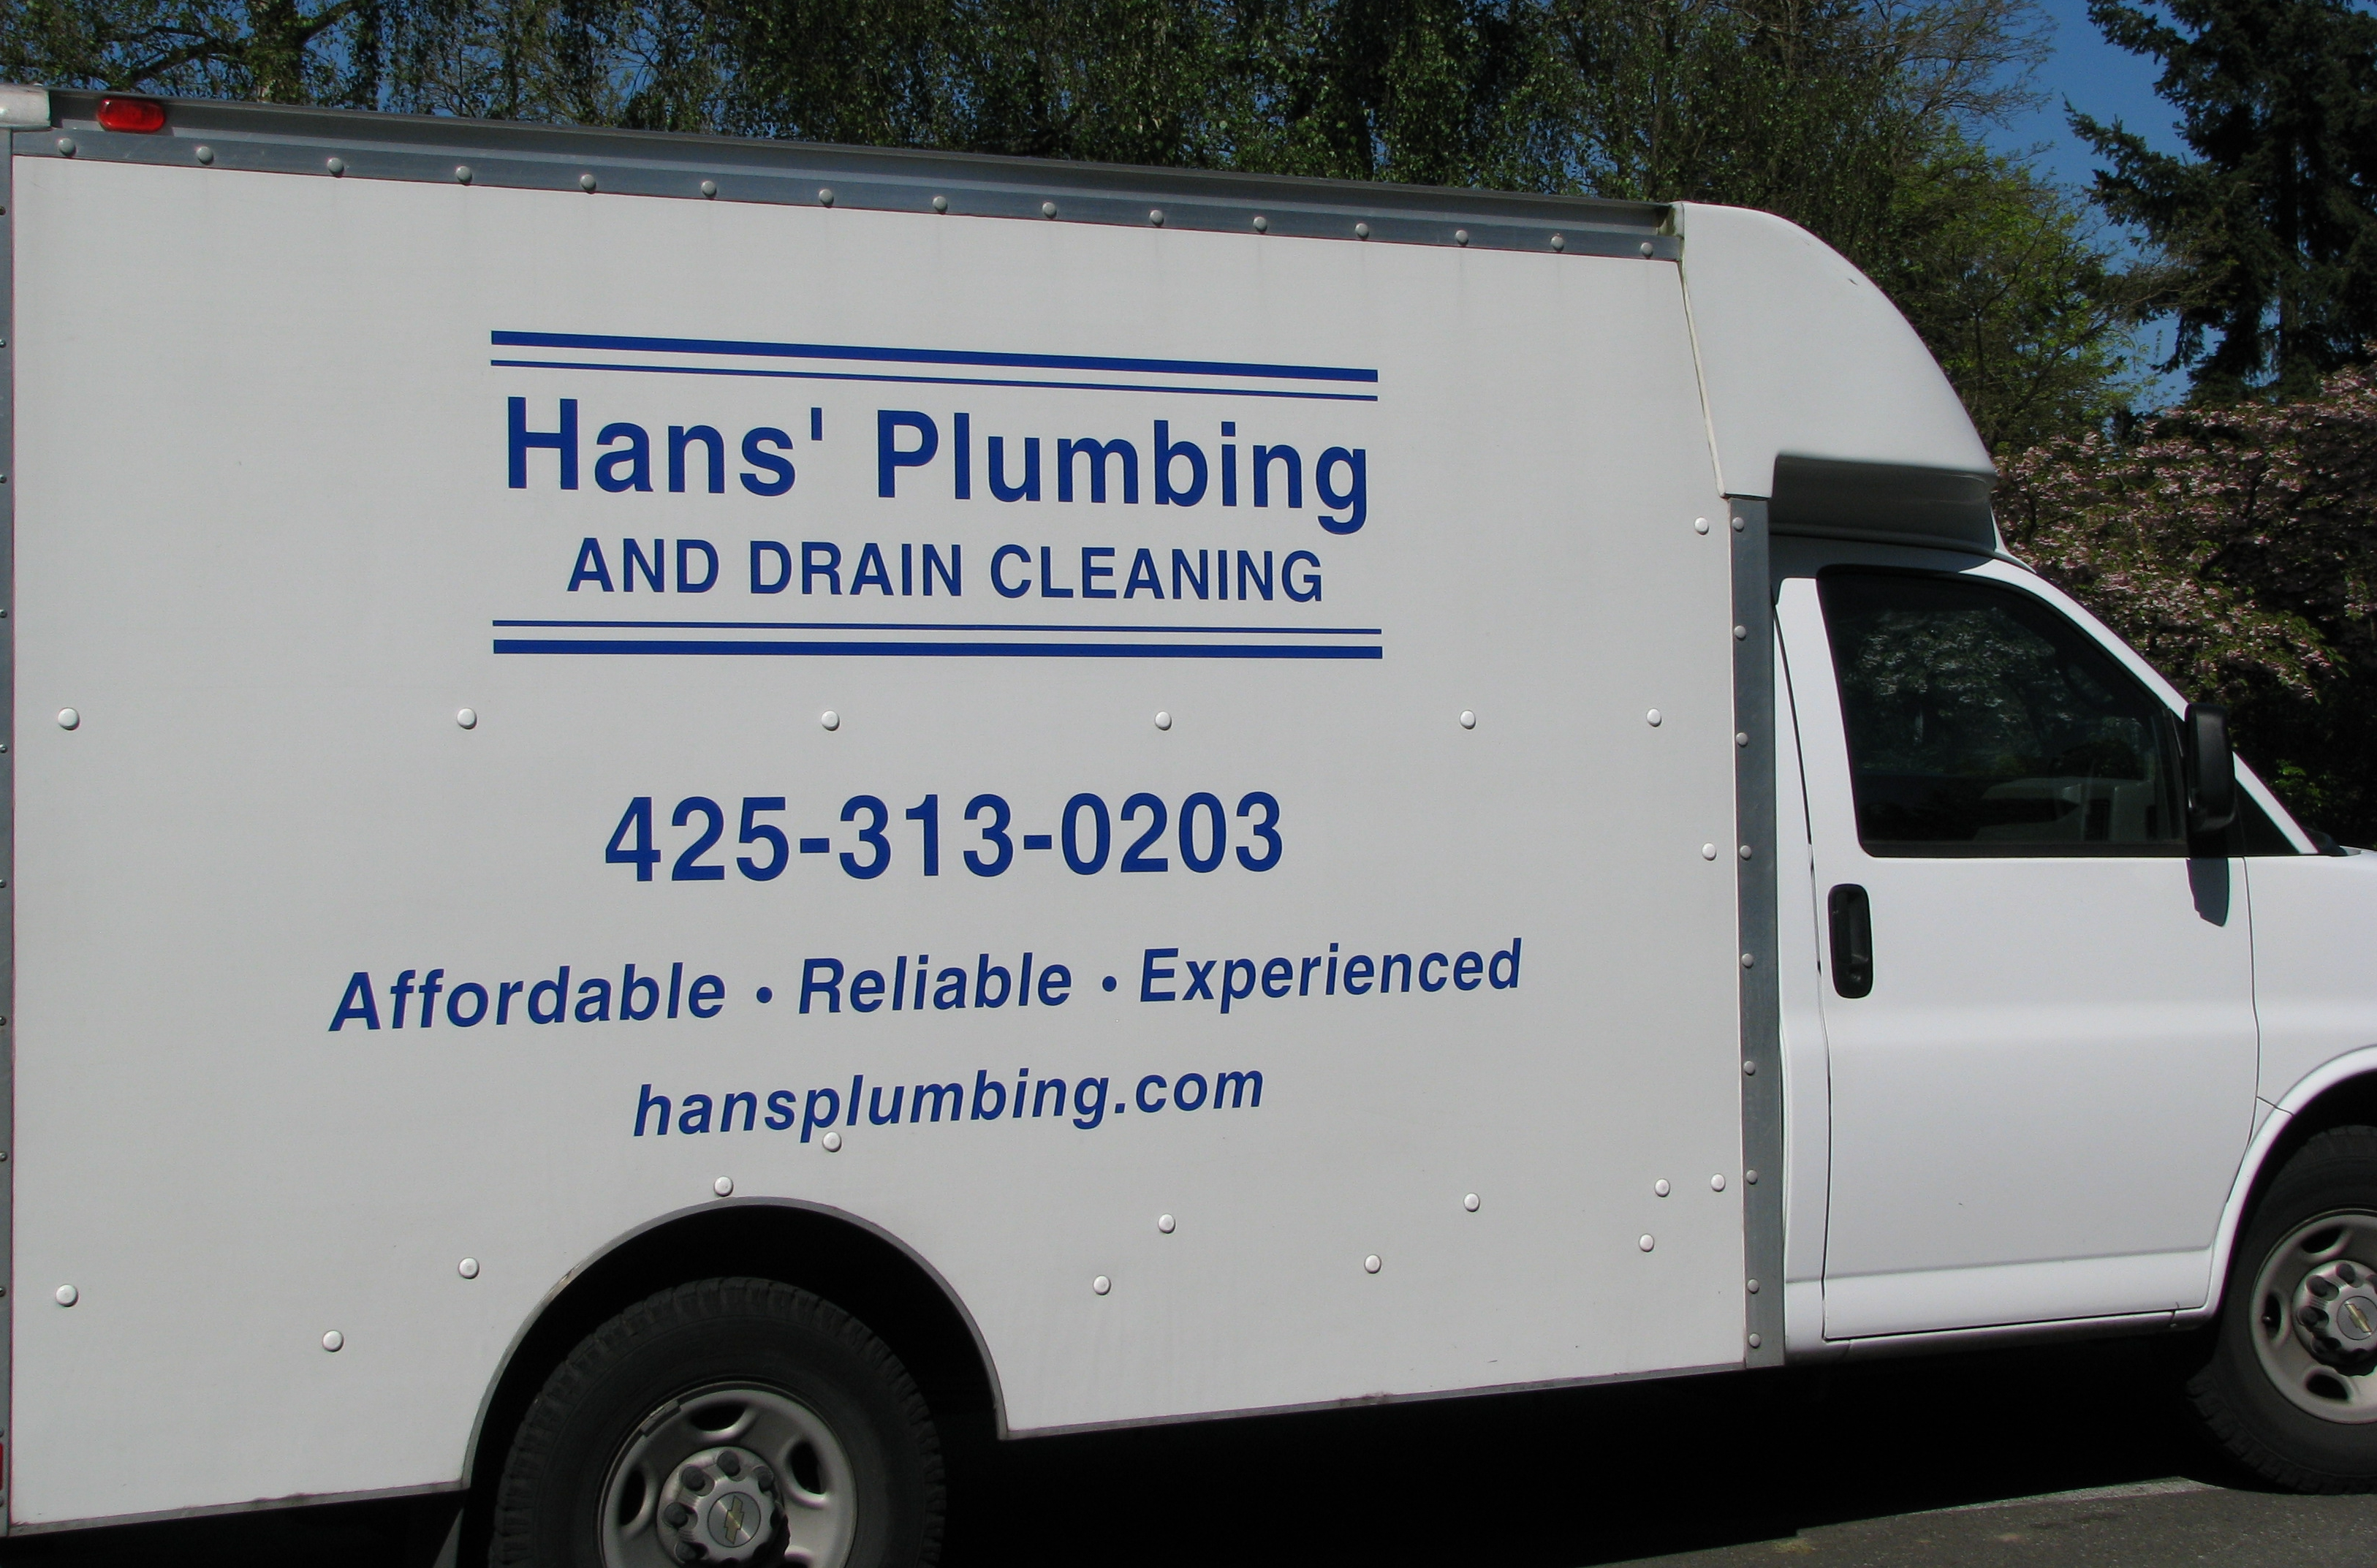 heaters plumbing over commercial a by affordable with the experience john plumber residential years hickson in home was repairs llc and licensed formed water johnwithtruck